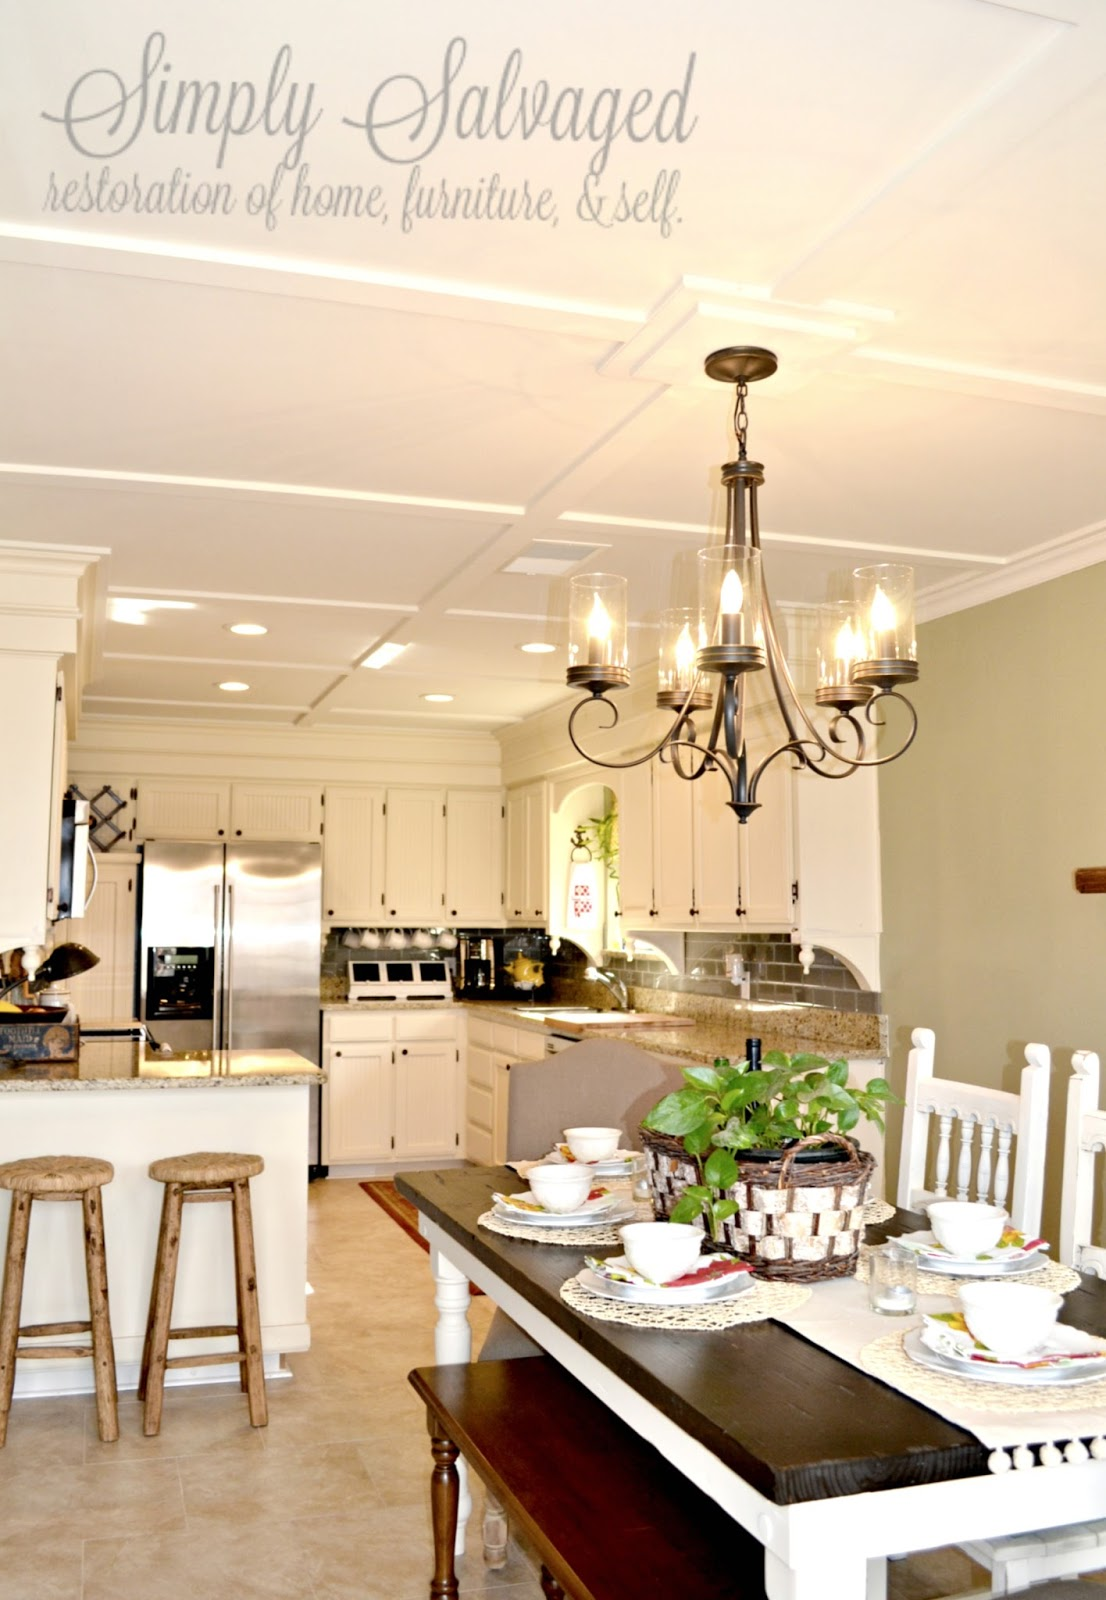 Simply Salvaged Cover Your Popcorn With A Diy Coffered Style Ceiling